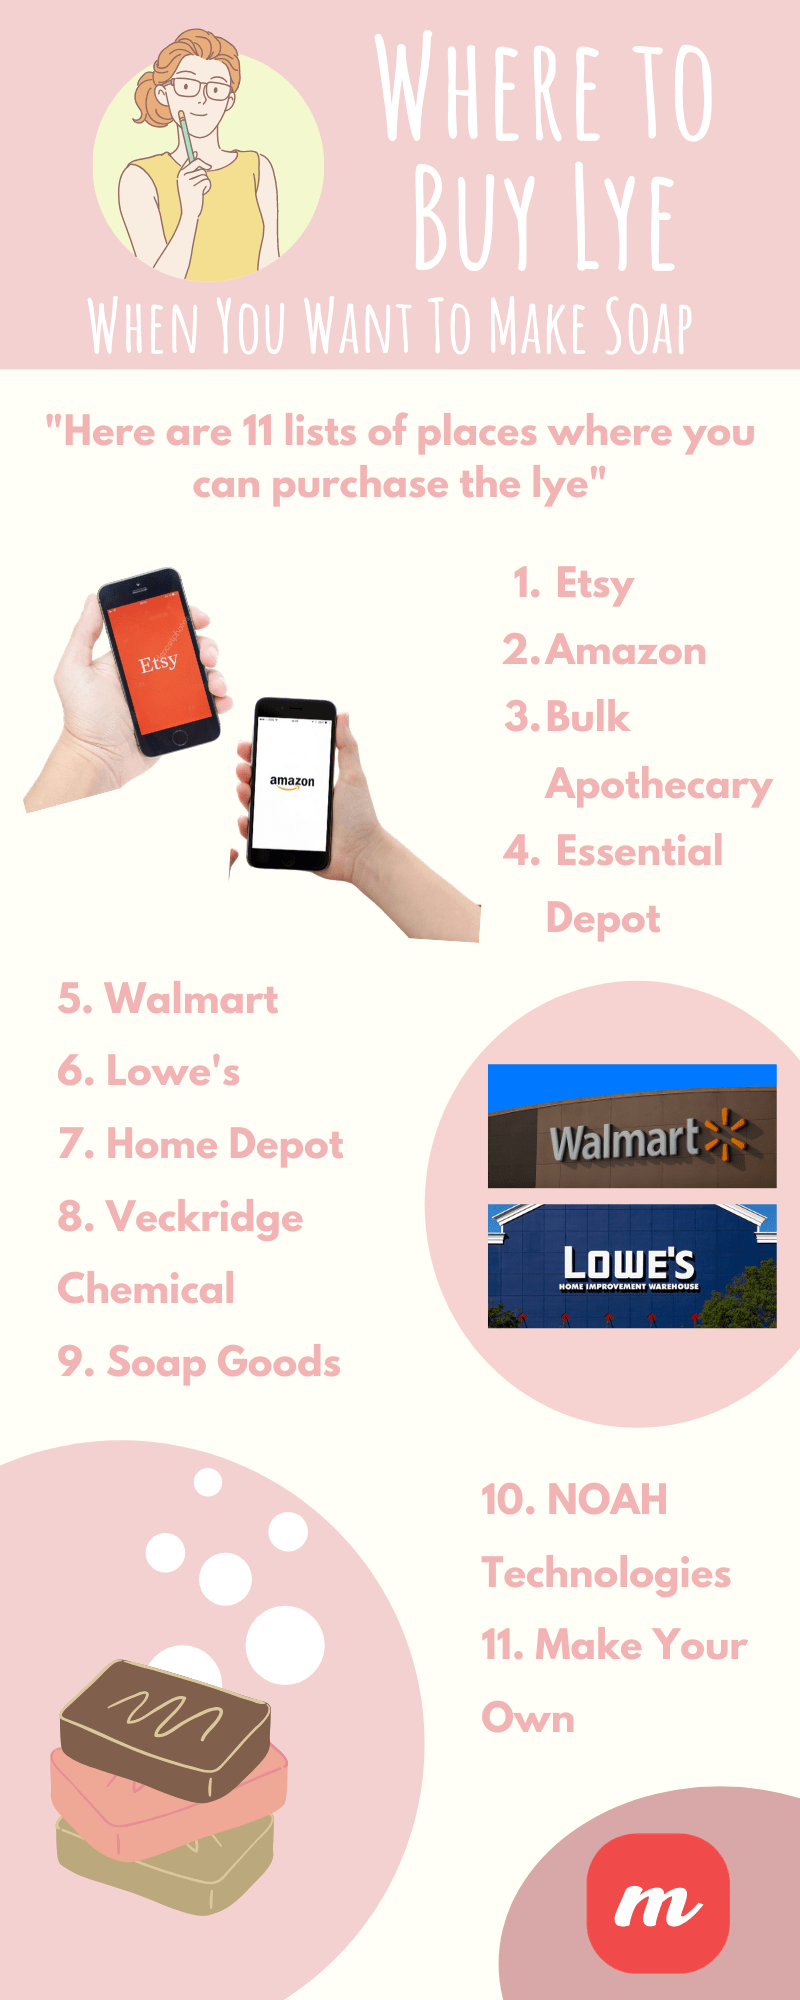 Where to Buy Lye When You Want To Make Soap - Infographic